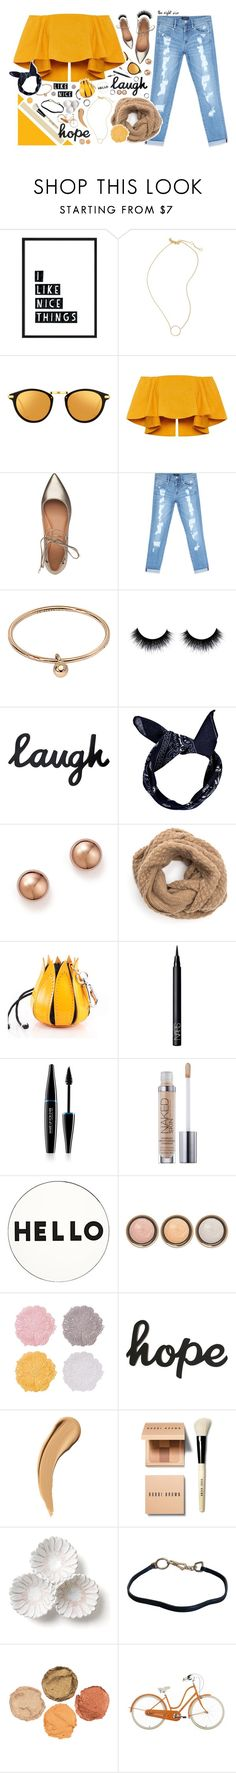 """The right size"" by pineapplesandpomegranates on Polyvore featuring Madewell, Linda Farrow, Sigerson Morrison, Bebe, Ginette NY, Boohoo, Bloomingdale's, NARS Cosmetics, MAKE UP FOR EVER and Lisa Perry"